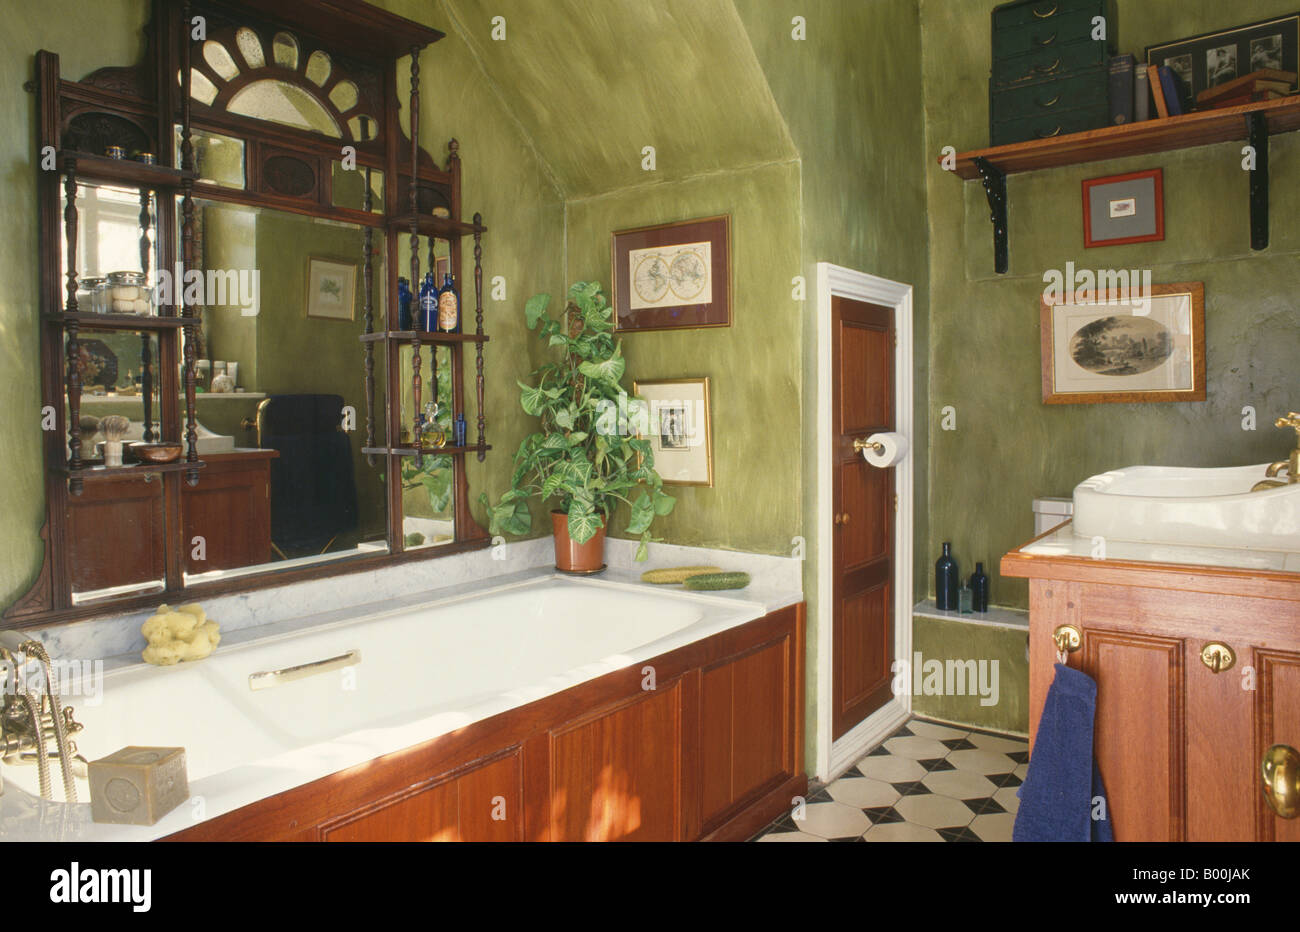 Edwardian Overmantel Mirror Above Bath In Green Dragged Paint Effect Stock Photo Alamy